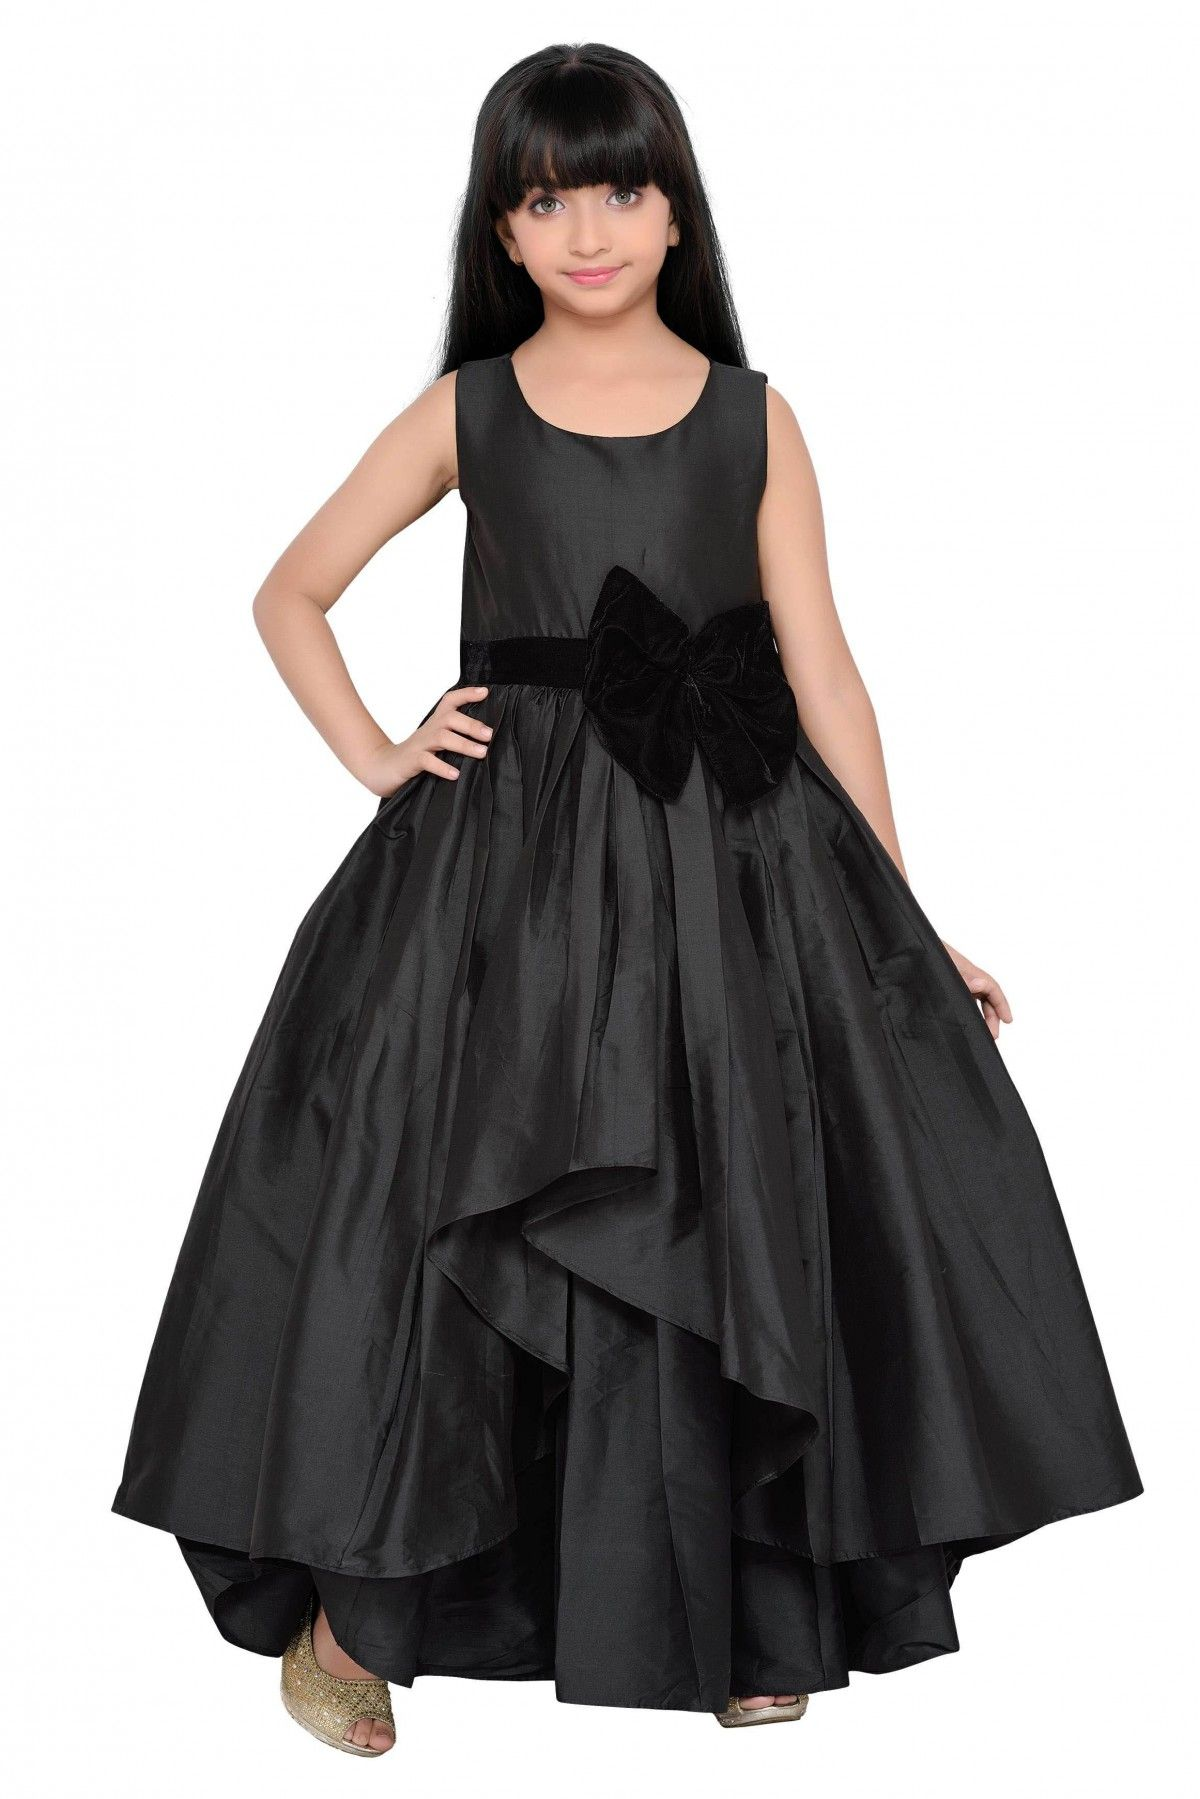 Taffeta Party Wear Gown In Black Colour Gowns for girls